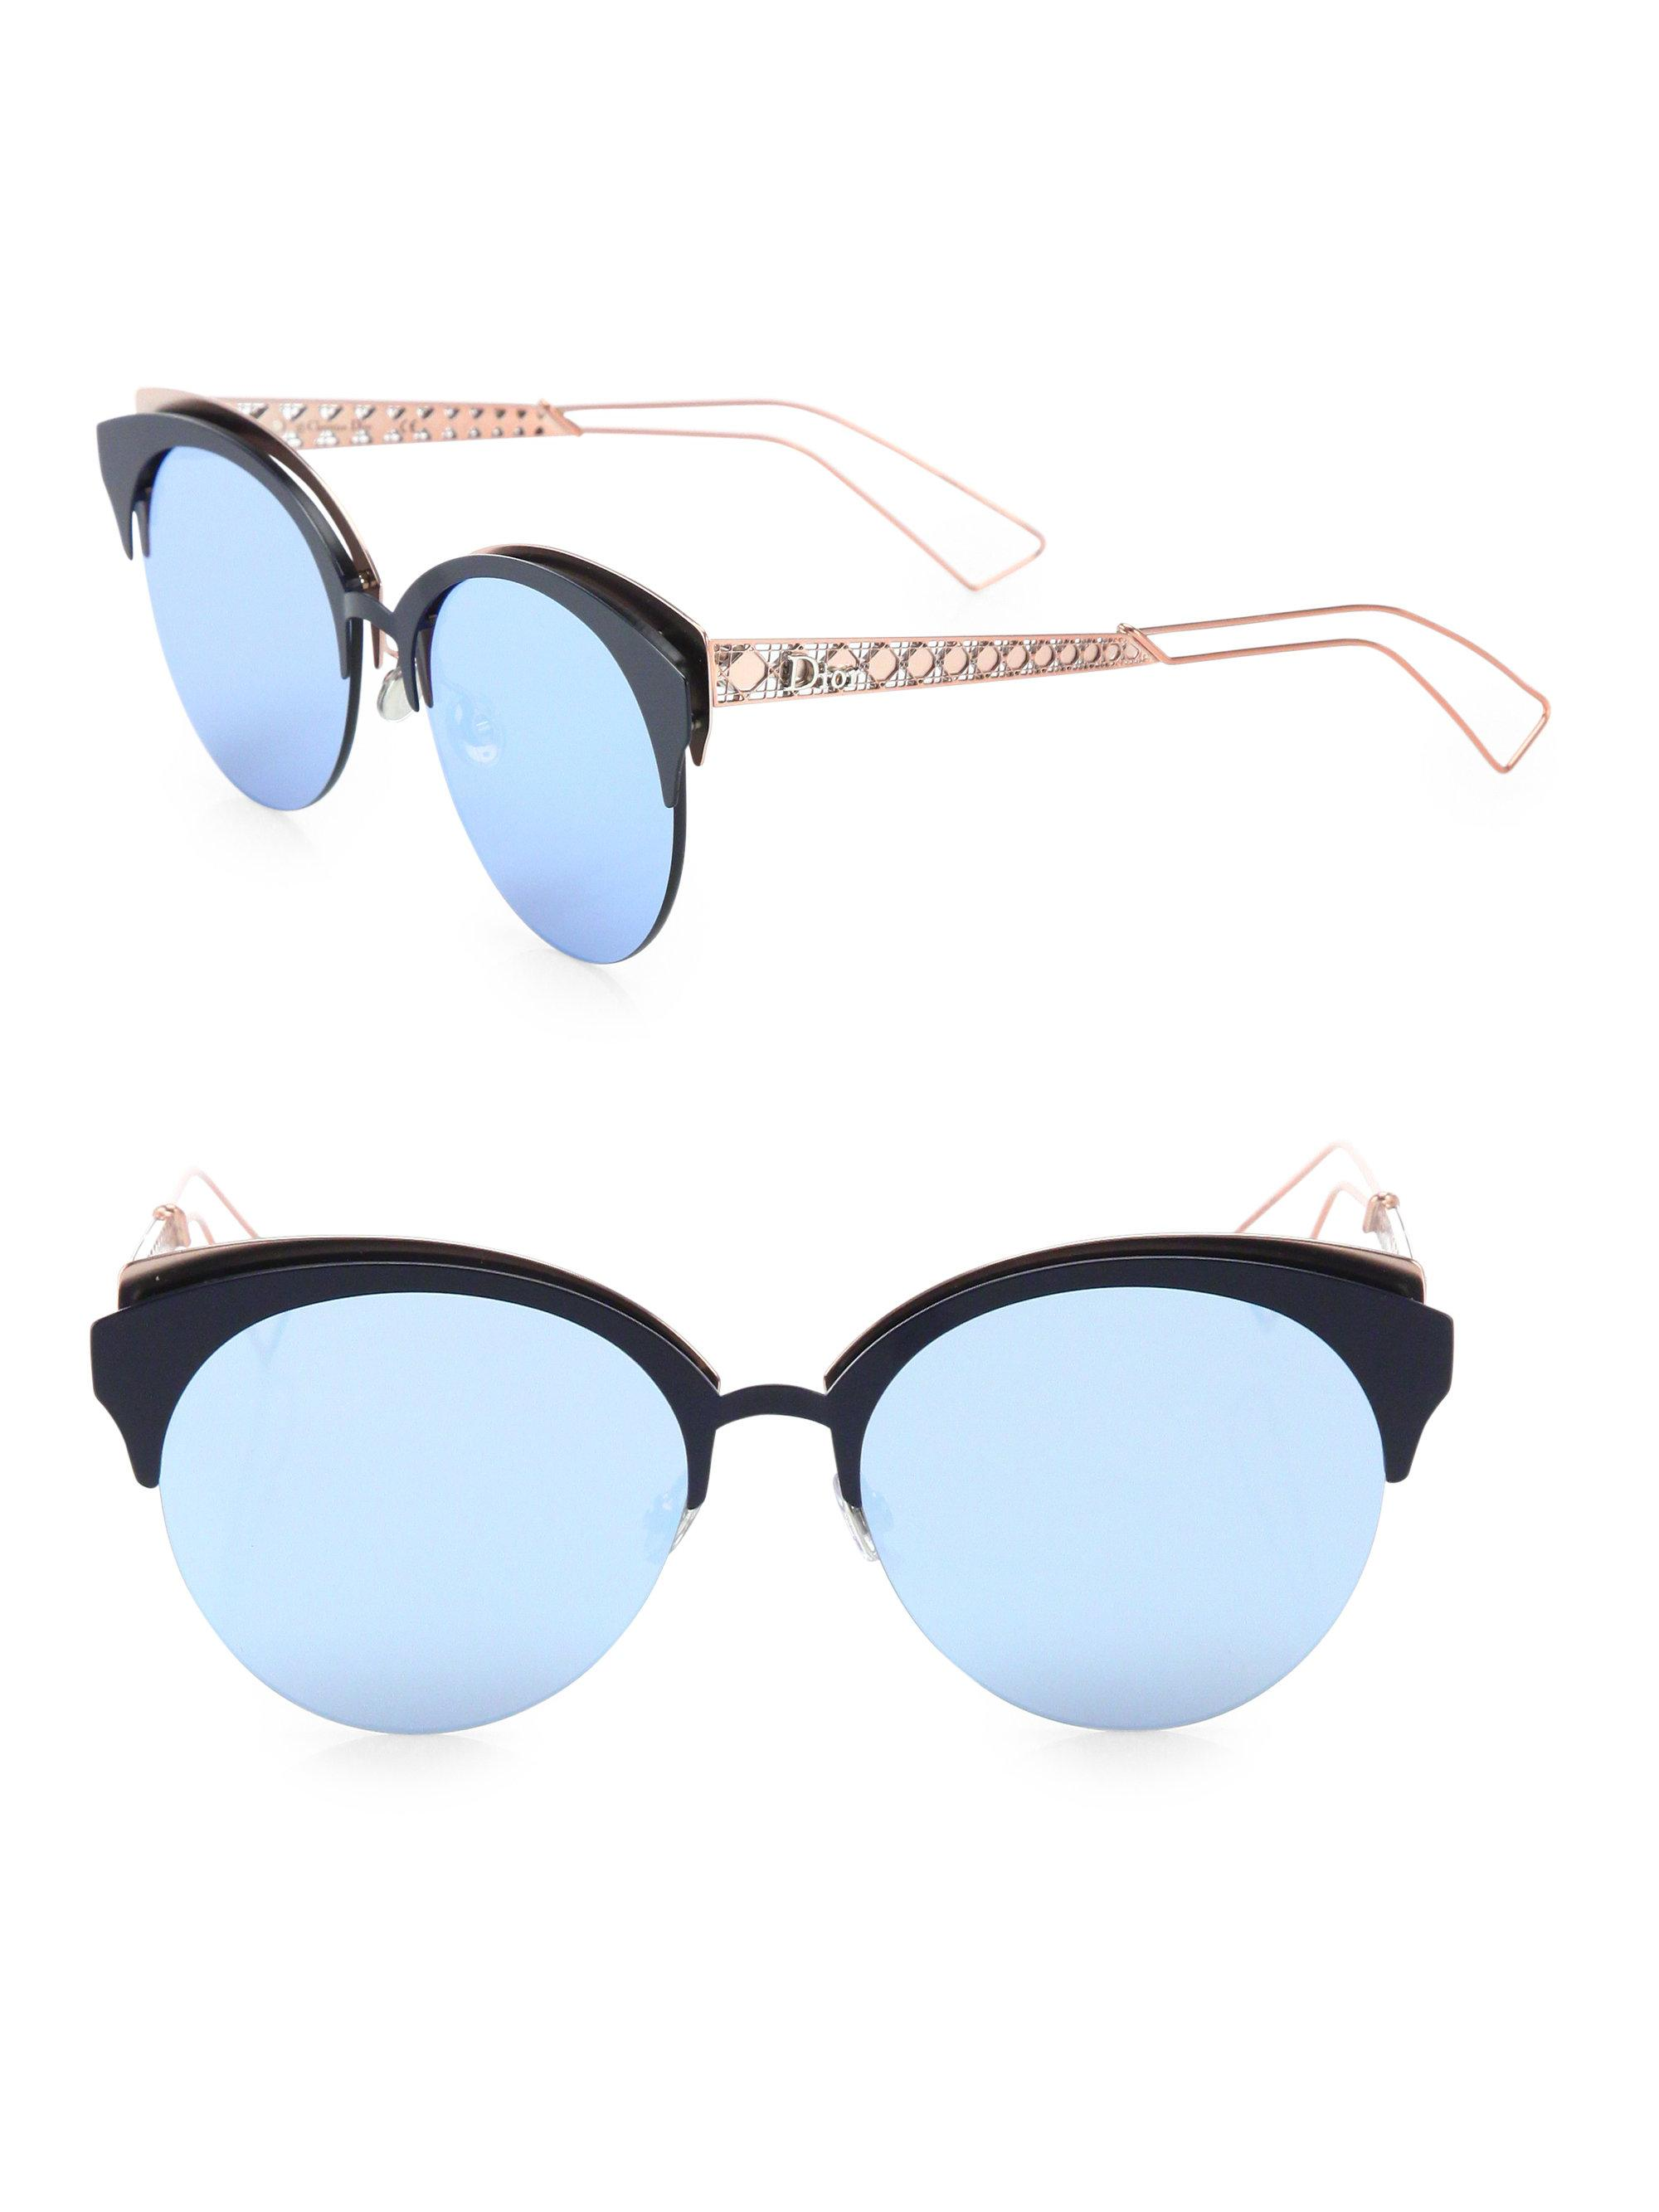 2747053466de0 Gallery. Previously sold at  Saks Fifth Avenue · Women s Round Sunglasses  Women s Clubmaster Sunglasses